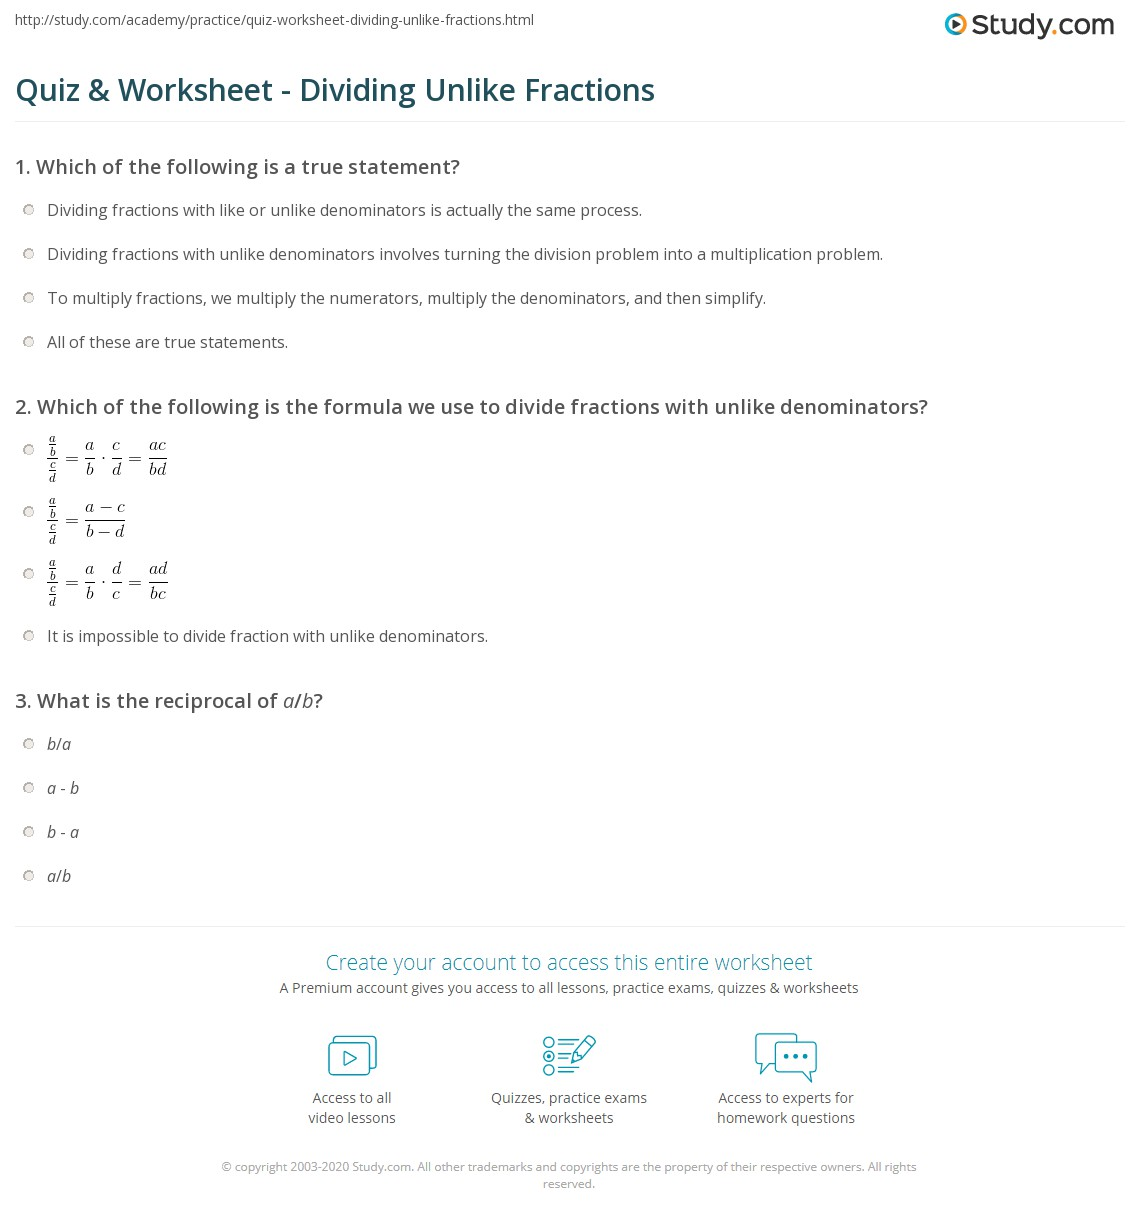 Print How To Divide Fractions With Unlike Denominators Worksheet Quiz &  Worksheet Dividing Unlike Fractions Study